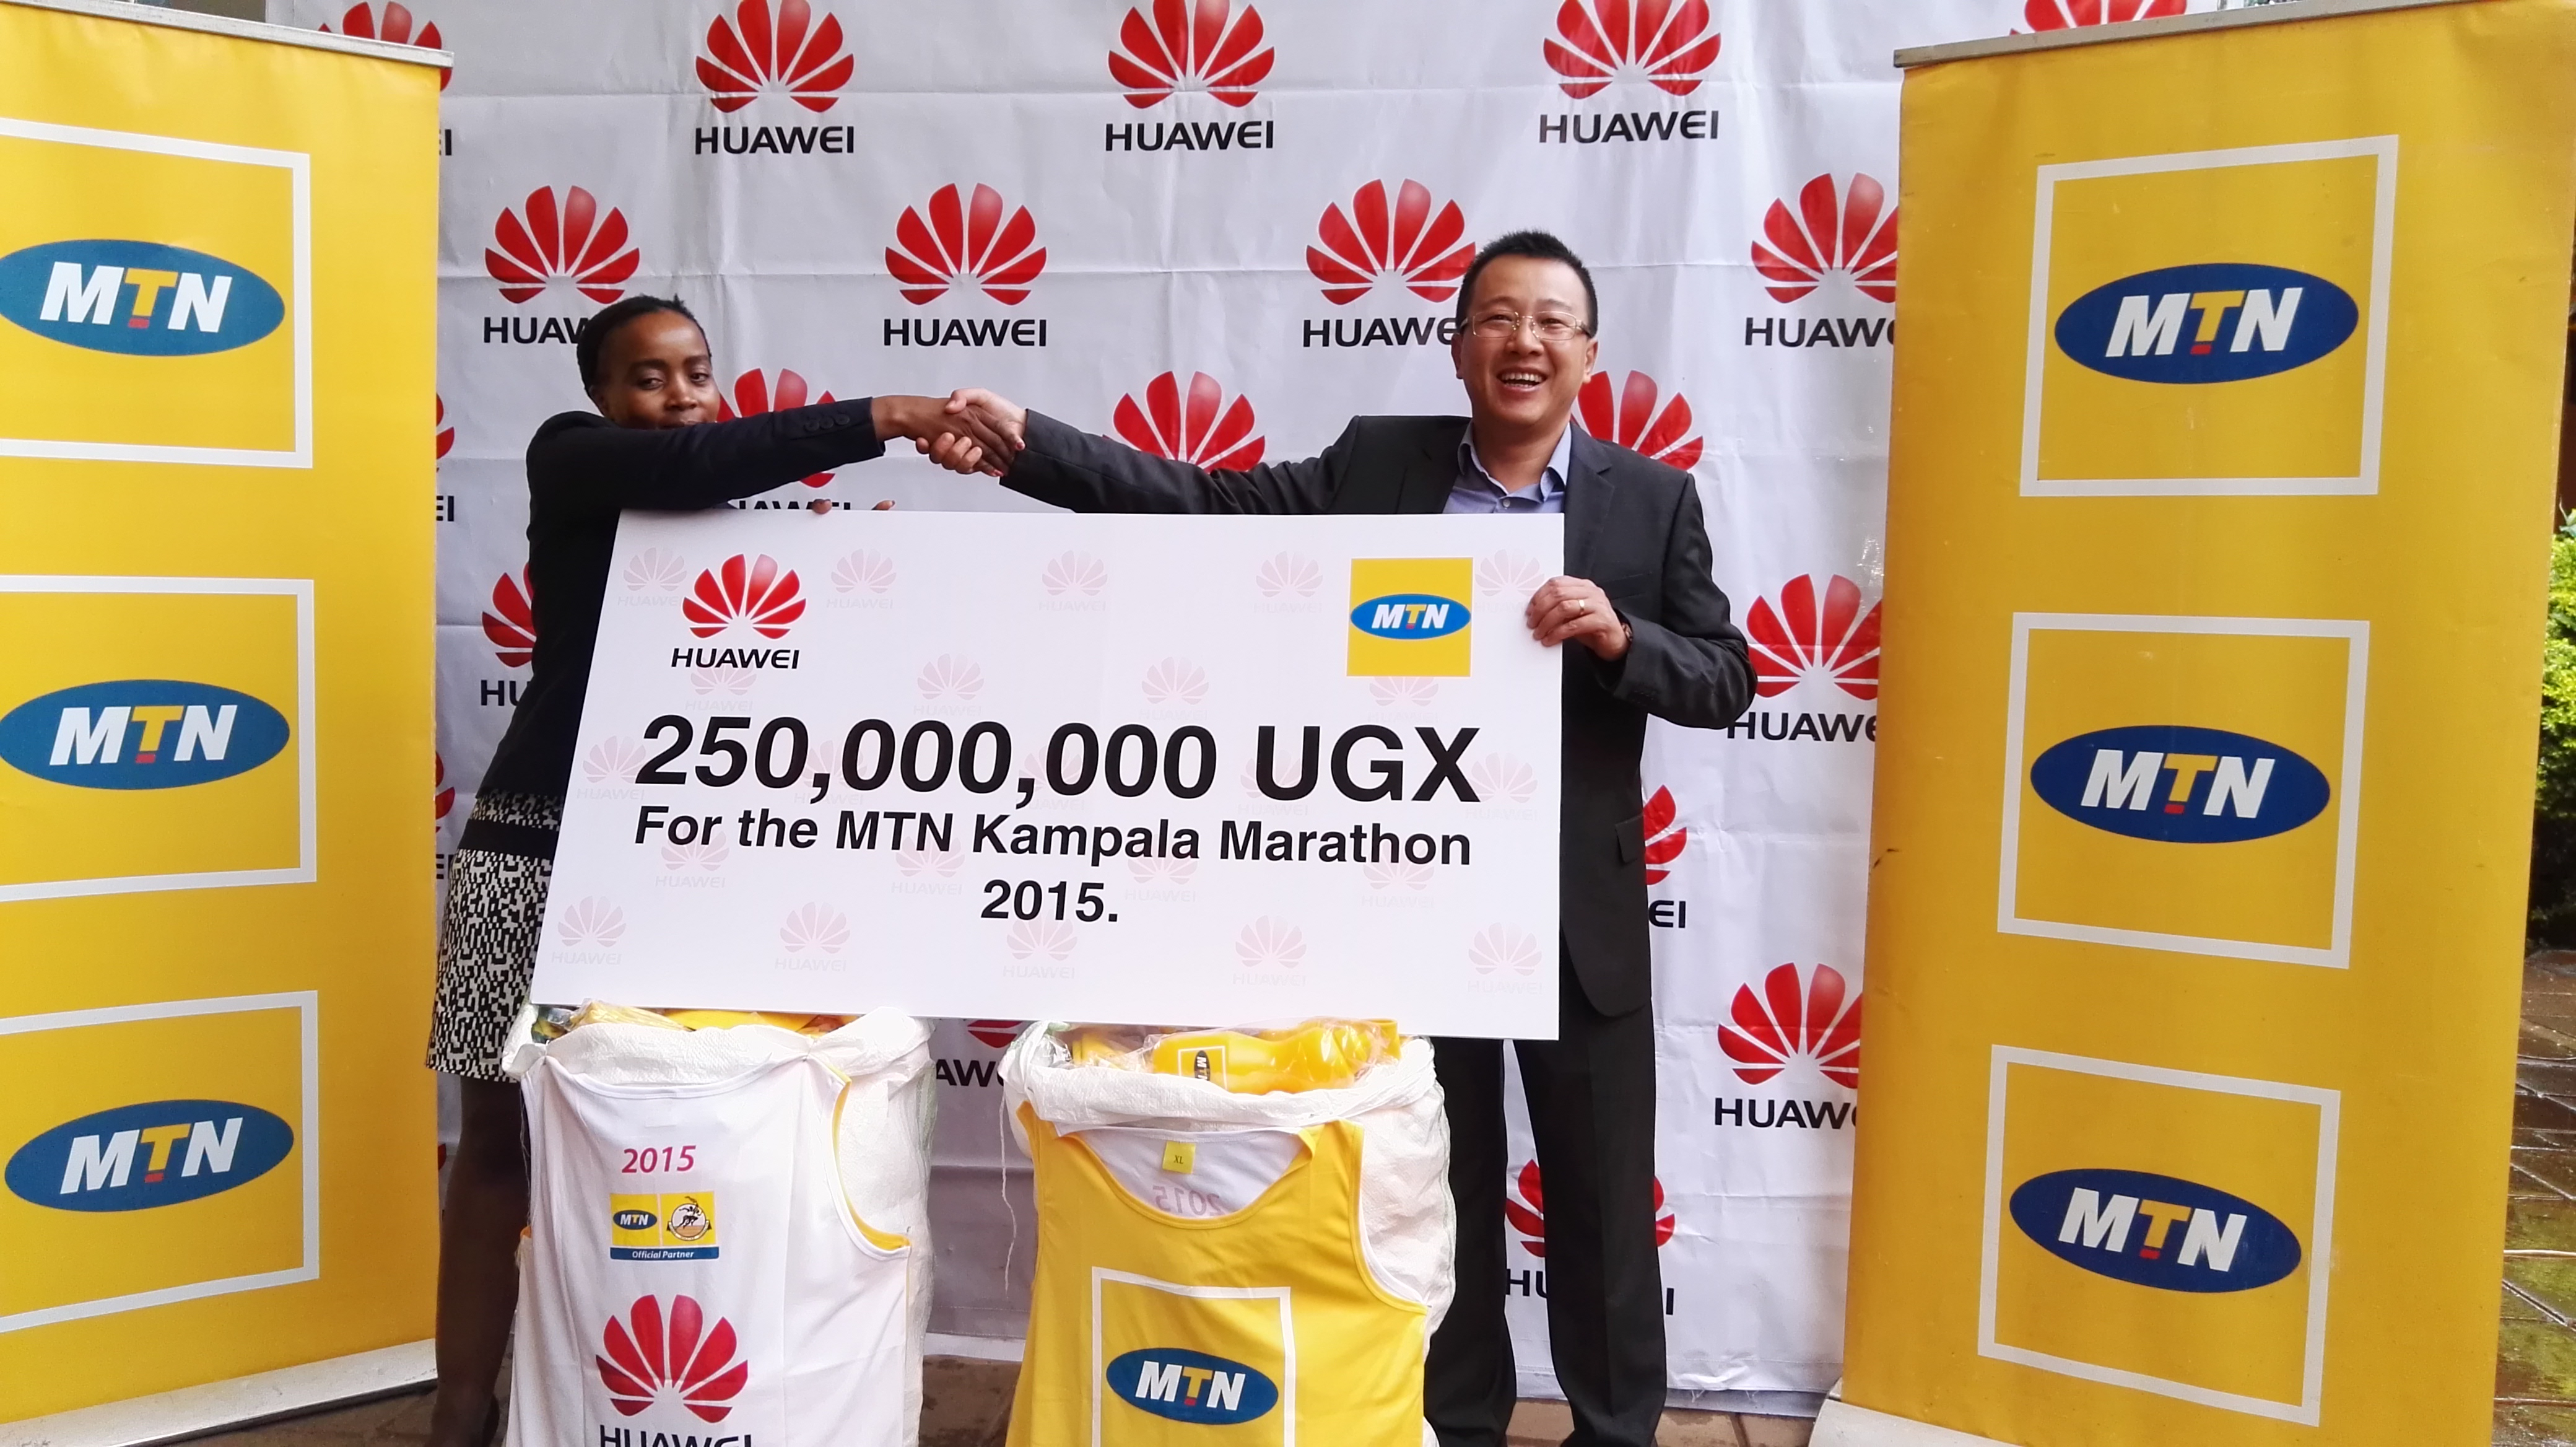 Photo of Huawei Offers 250,000,000 UGX for the 2015 MTN Kampala Marathon